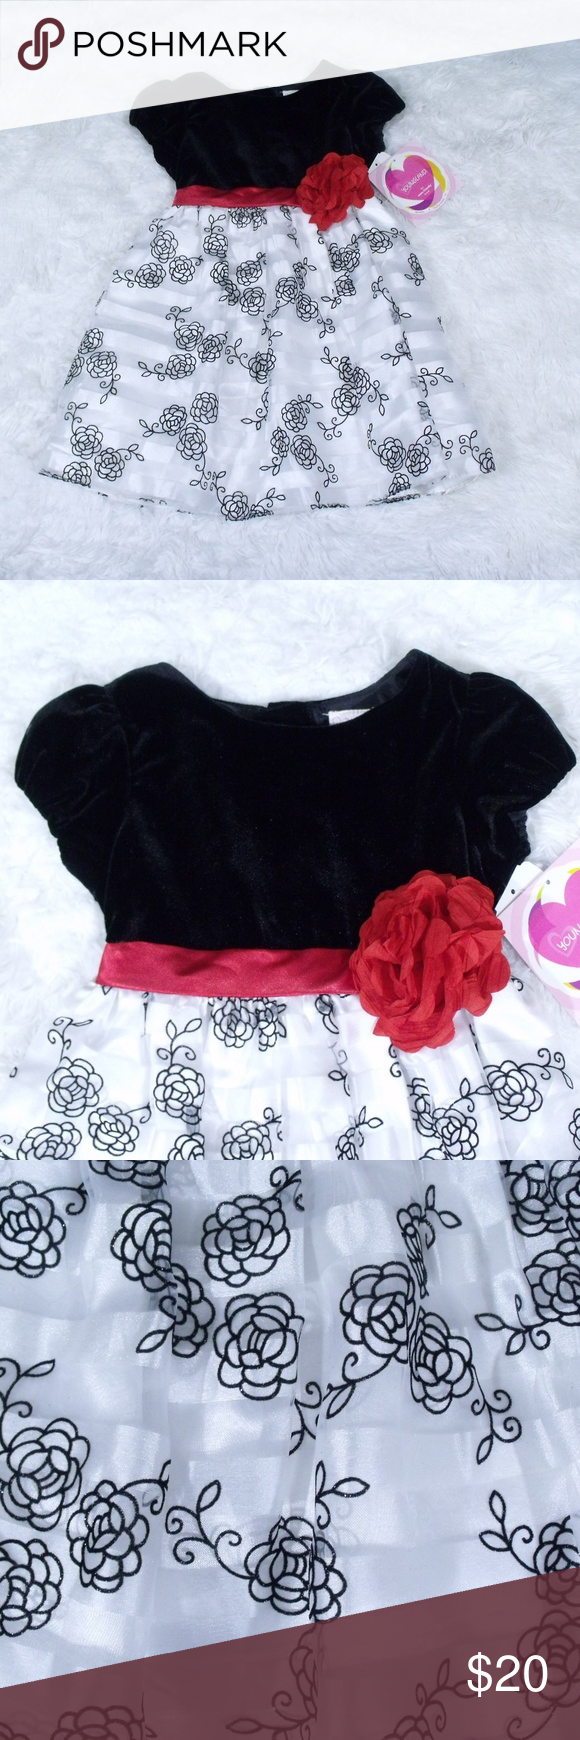 Youngland Roses Holiday Party Dress 5t Youngland Dress Size 5t Black With White Skirt That Has Bla Holiday Party Dresses Clothes Design Colorful Dresses [ 1740 x 580 Pixel ]